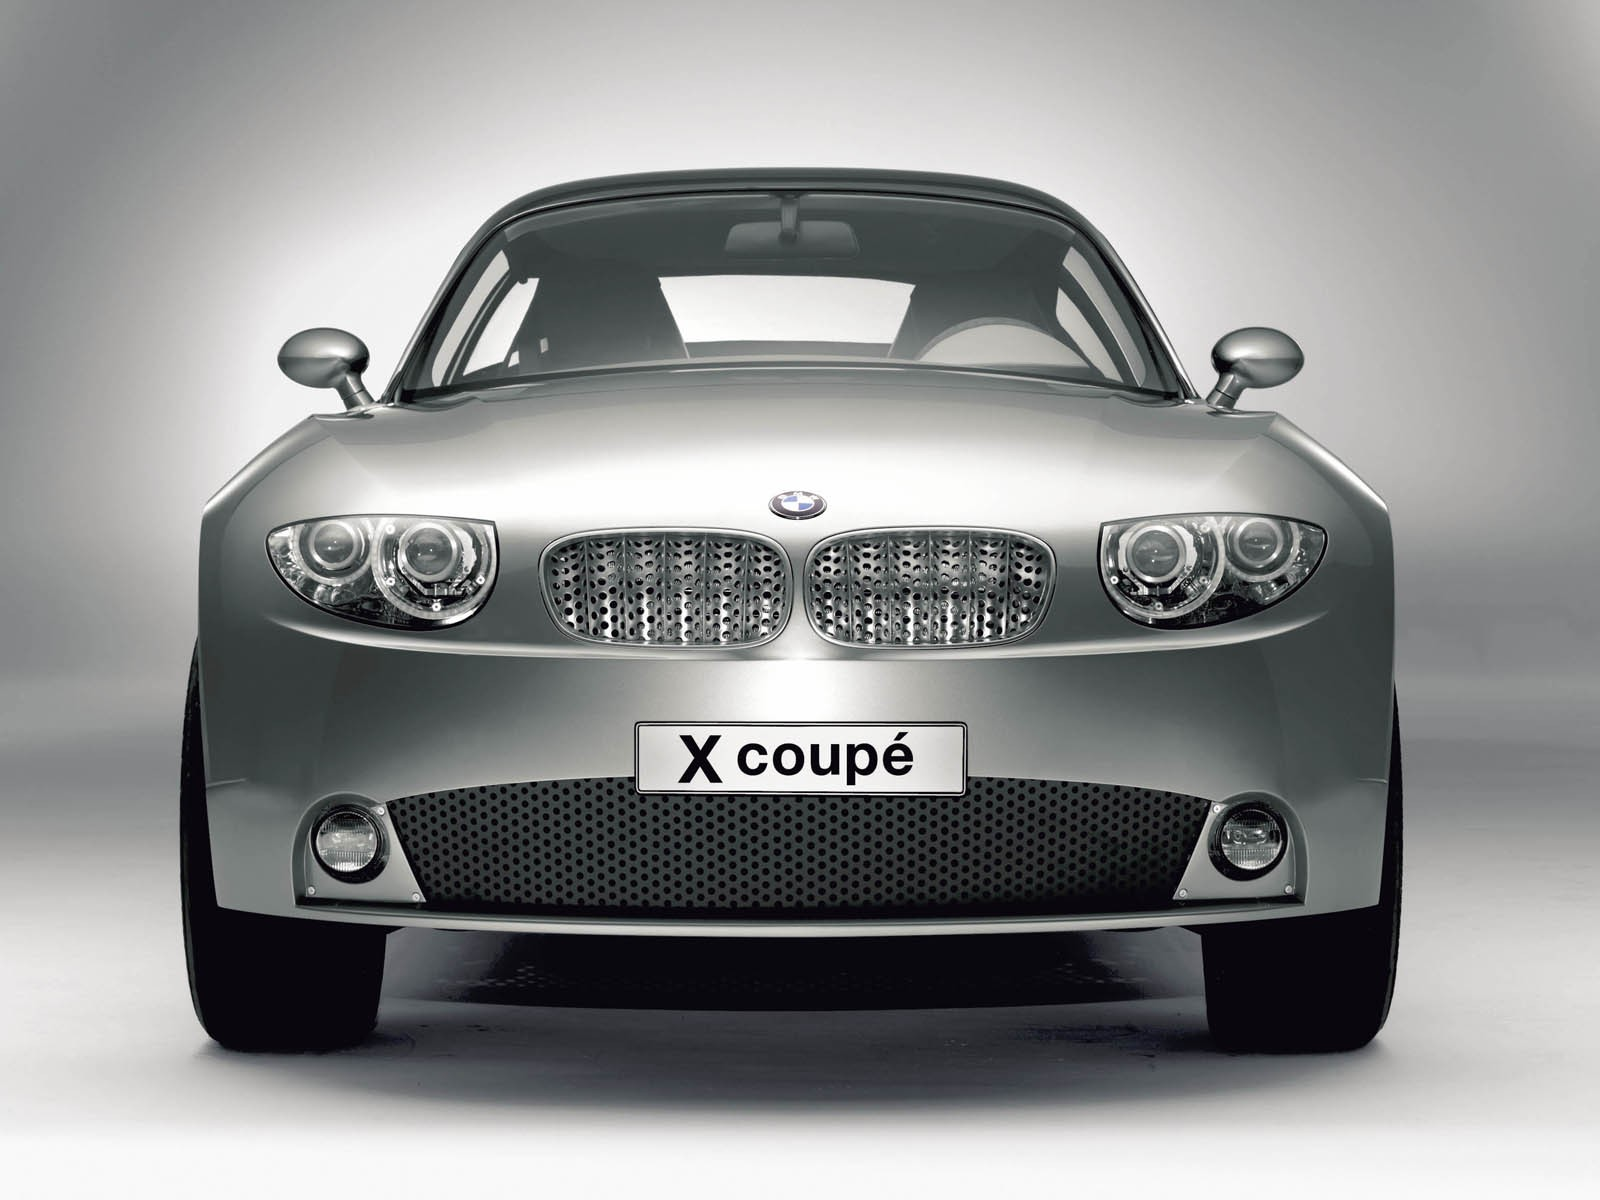 Bmw X Coupe Front View